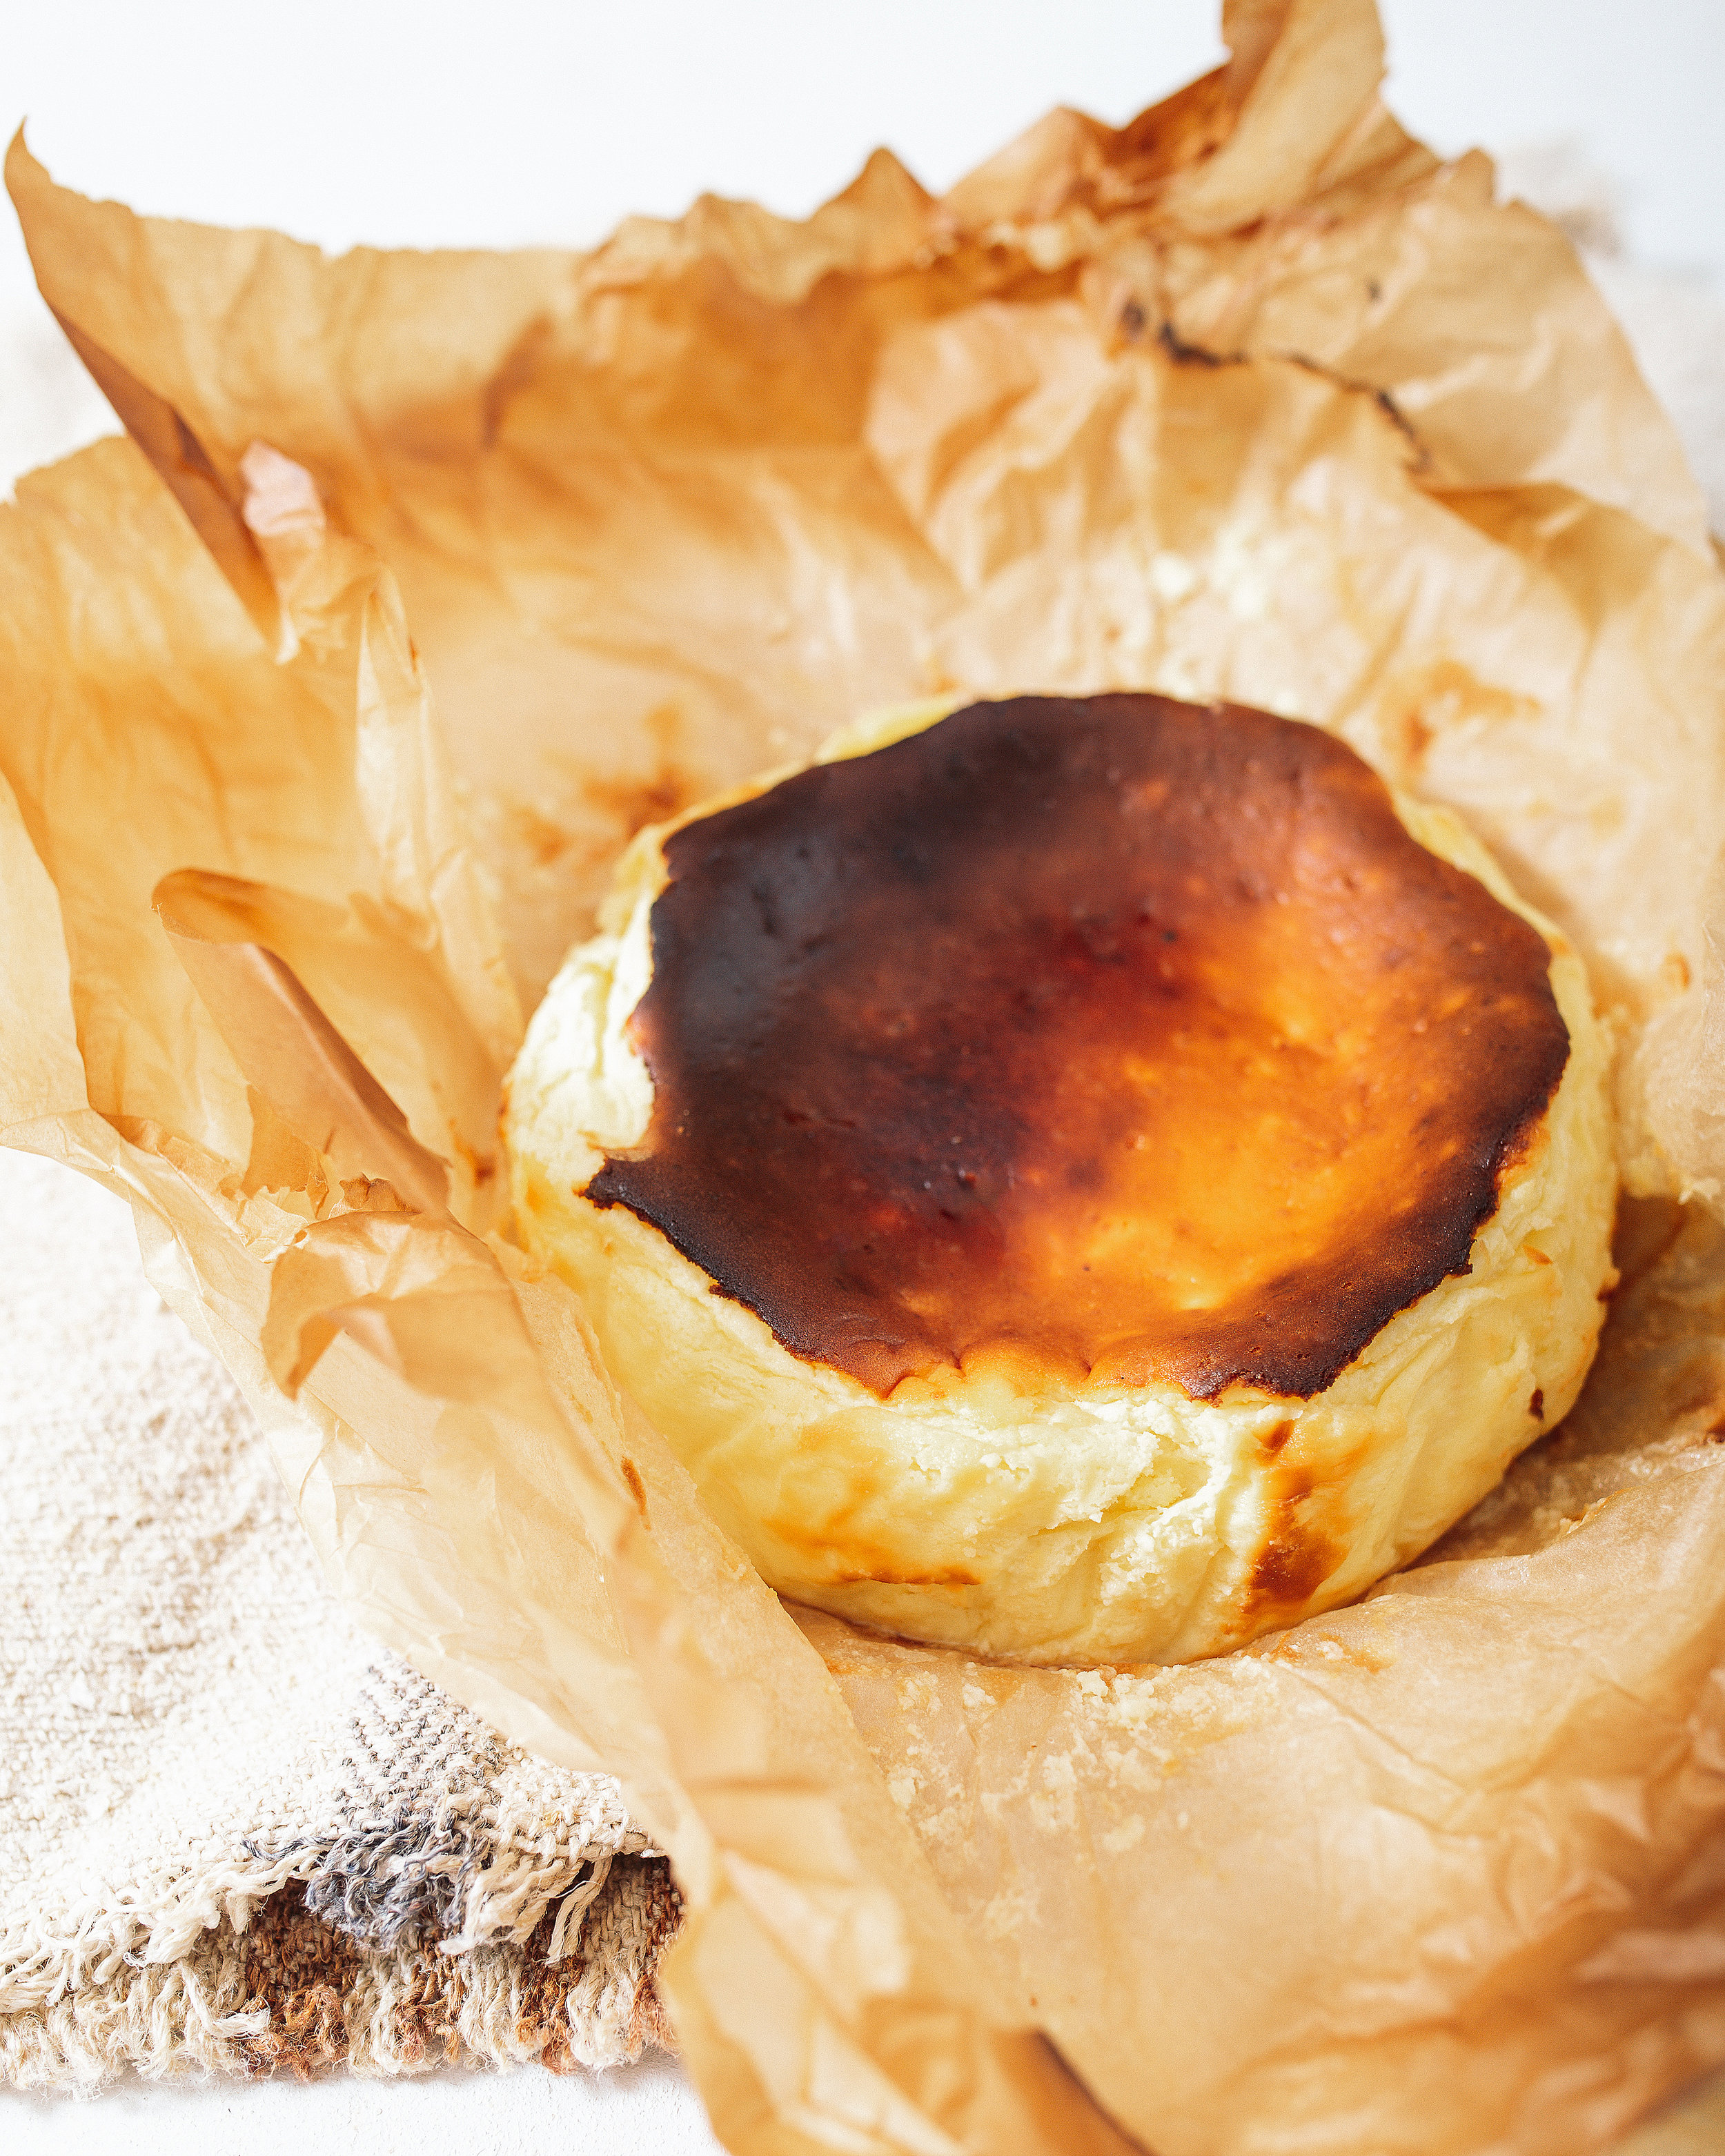 Basque Cheesecake Photography by Monica Lo